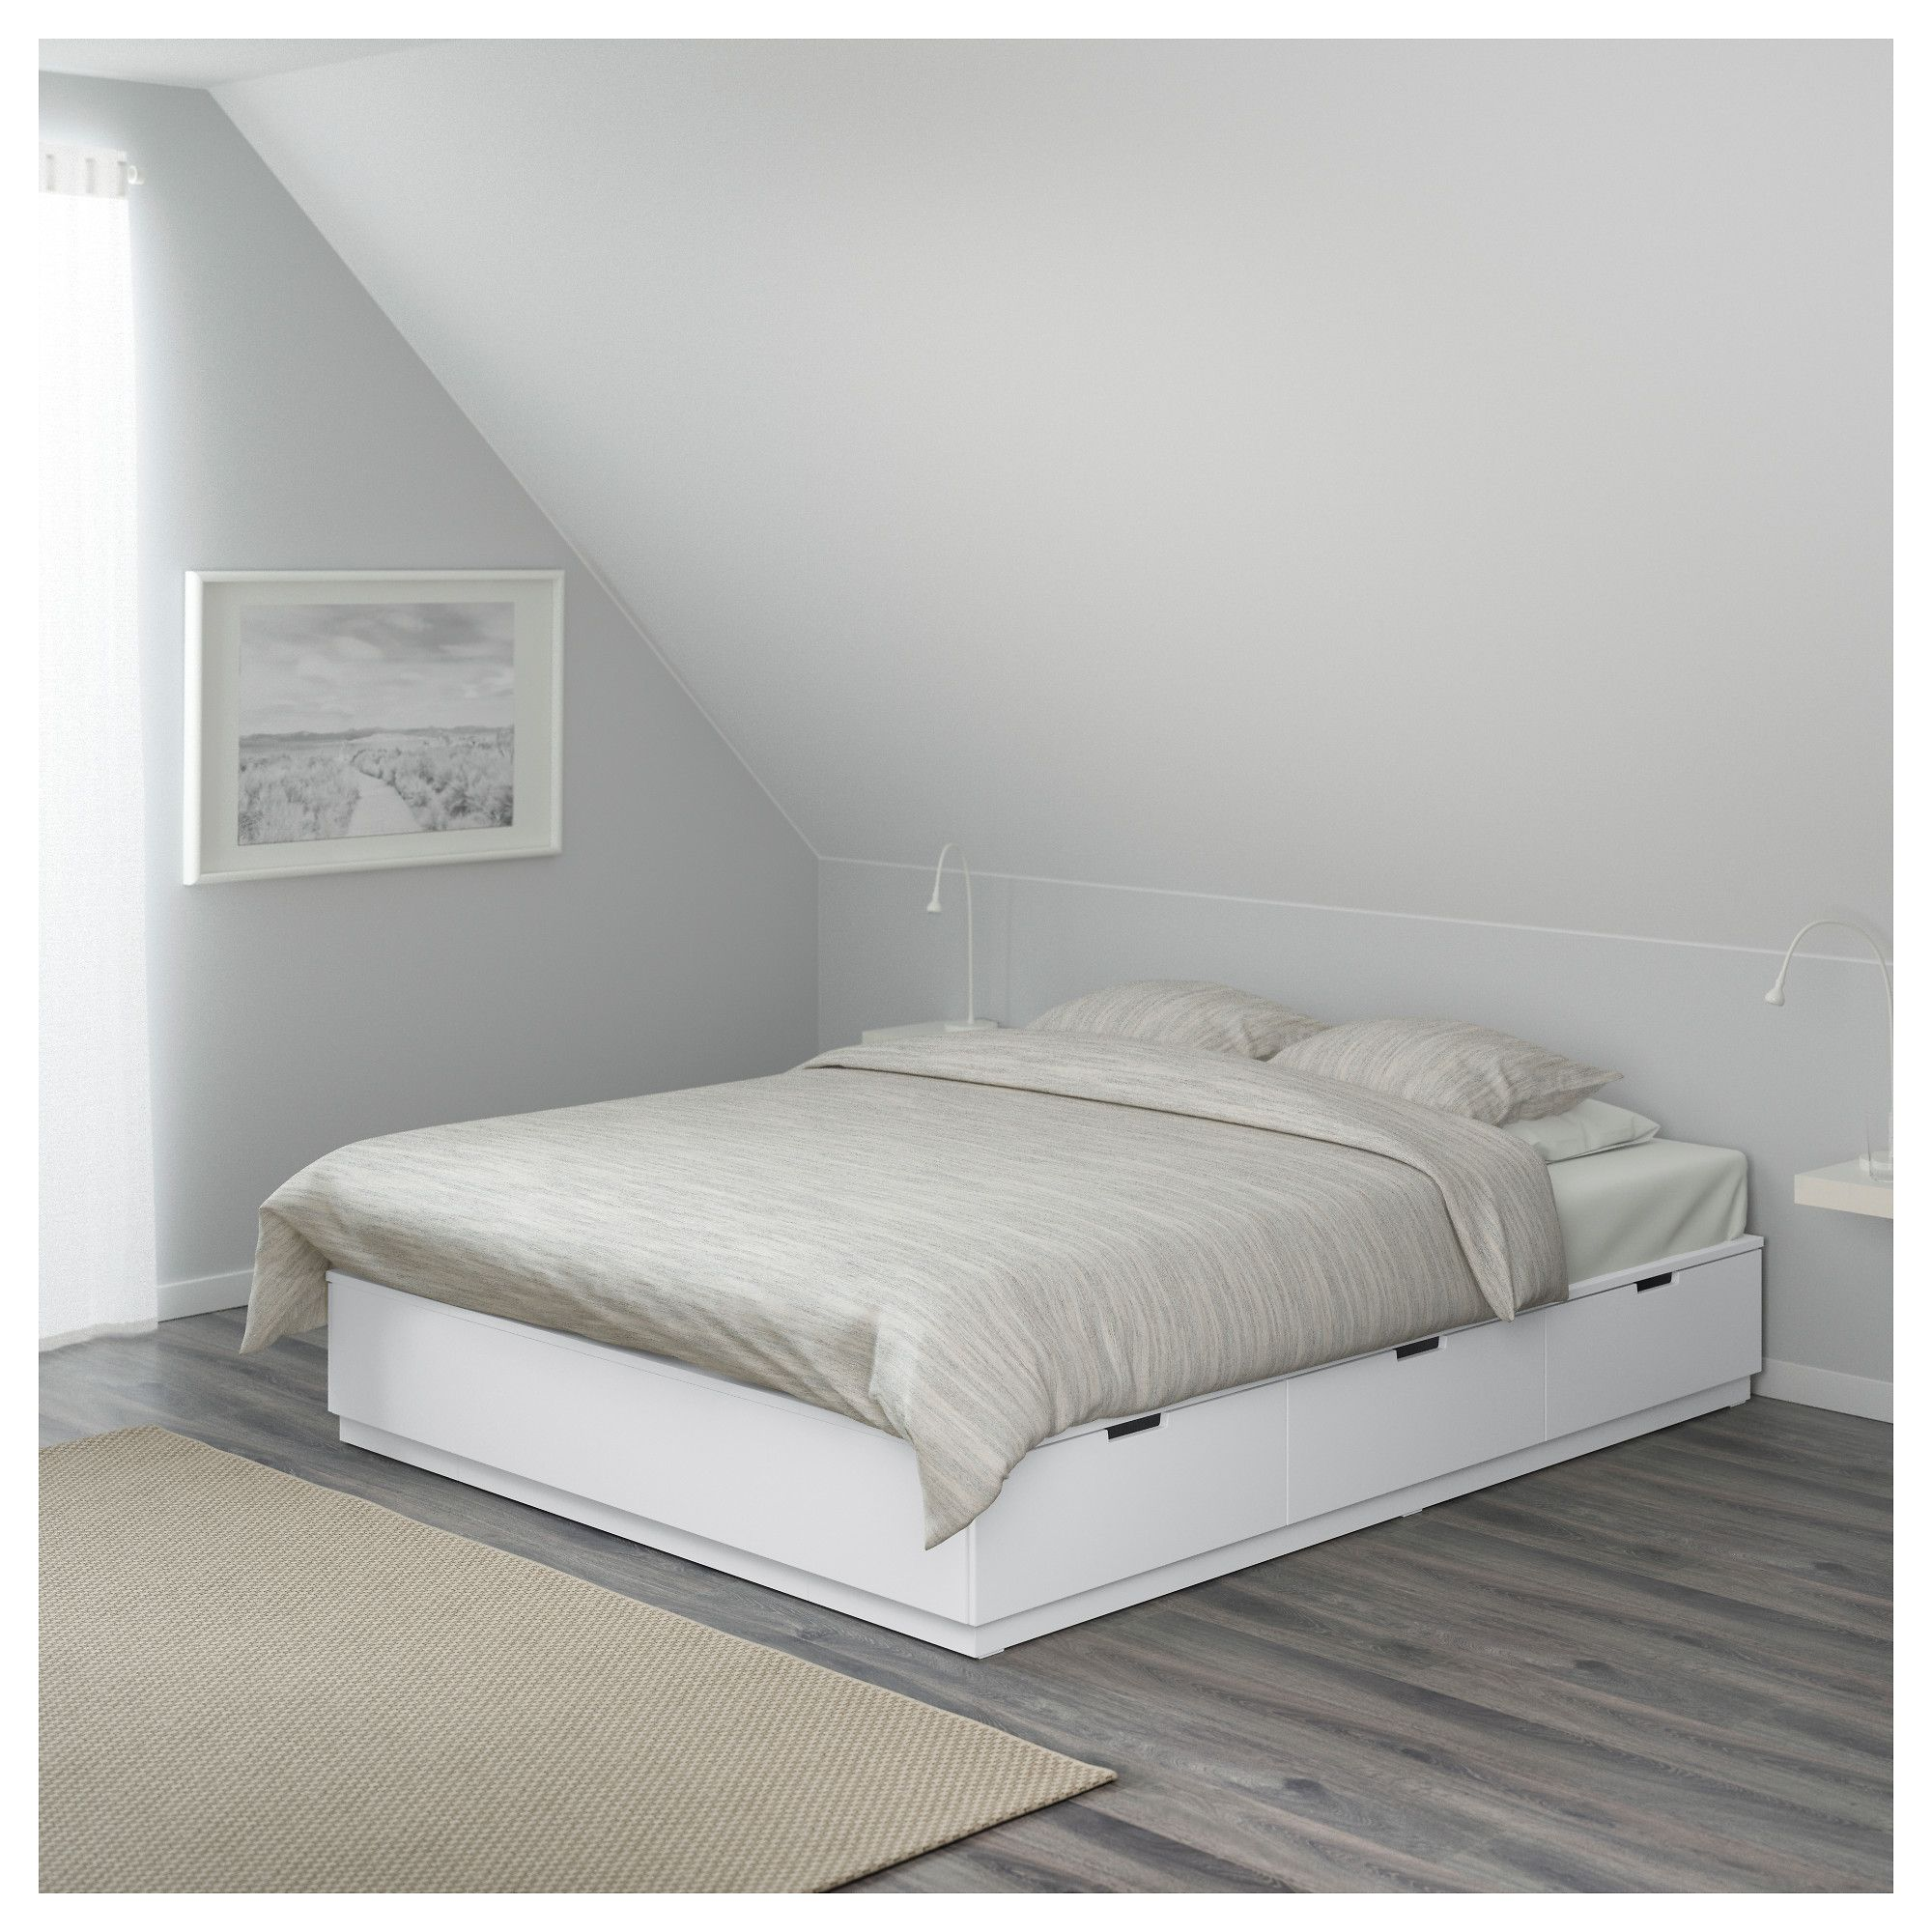 Nordli Bed Frame With Storage White Queen Bed Frame With Storage Ikea Bed Bed Frame